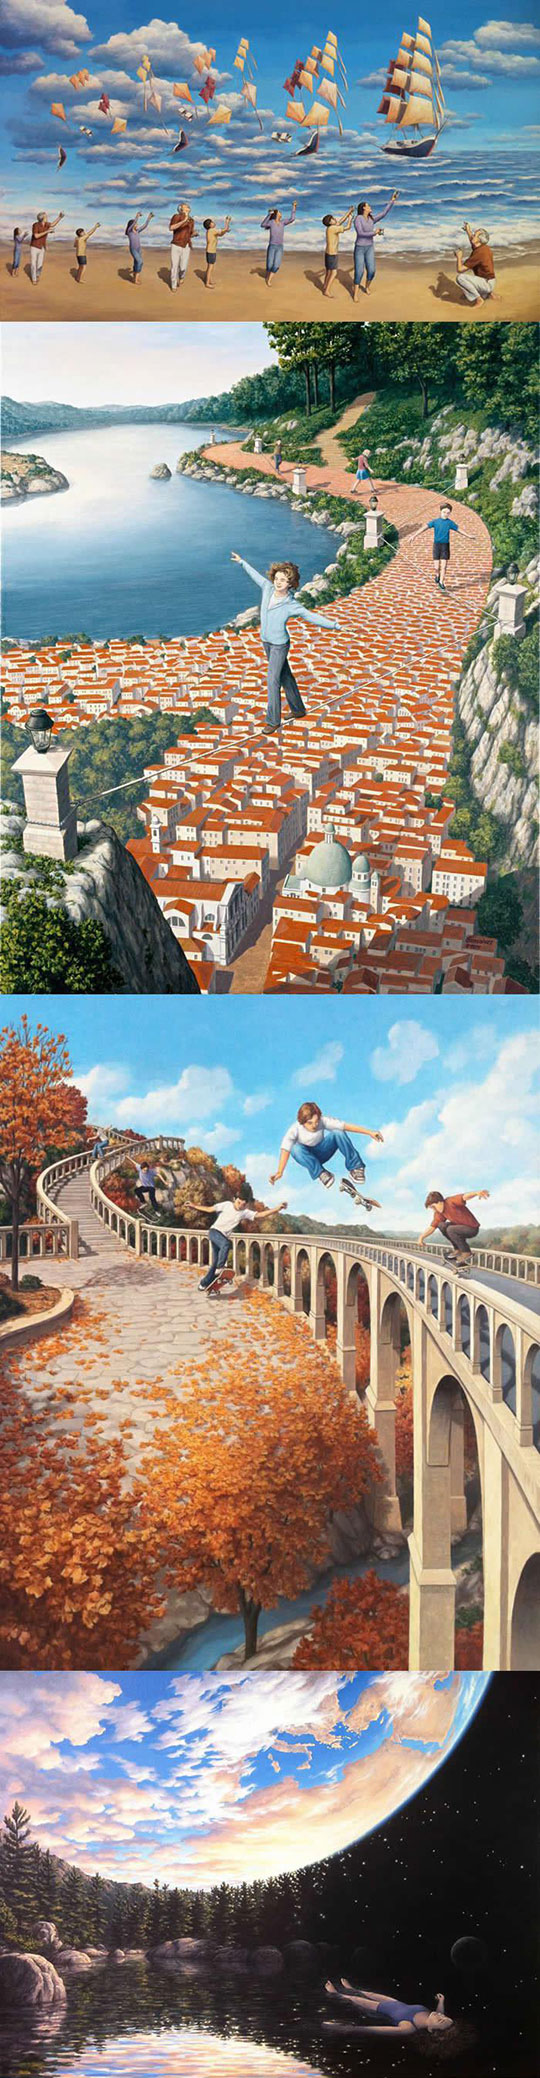 cool-paintings-optical-illusion-kids-playing